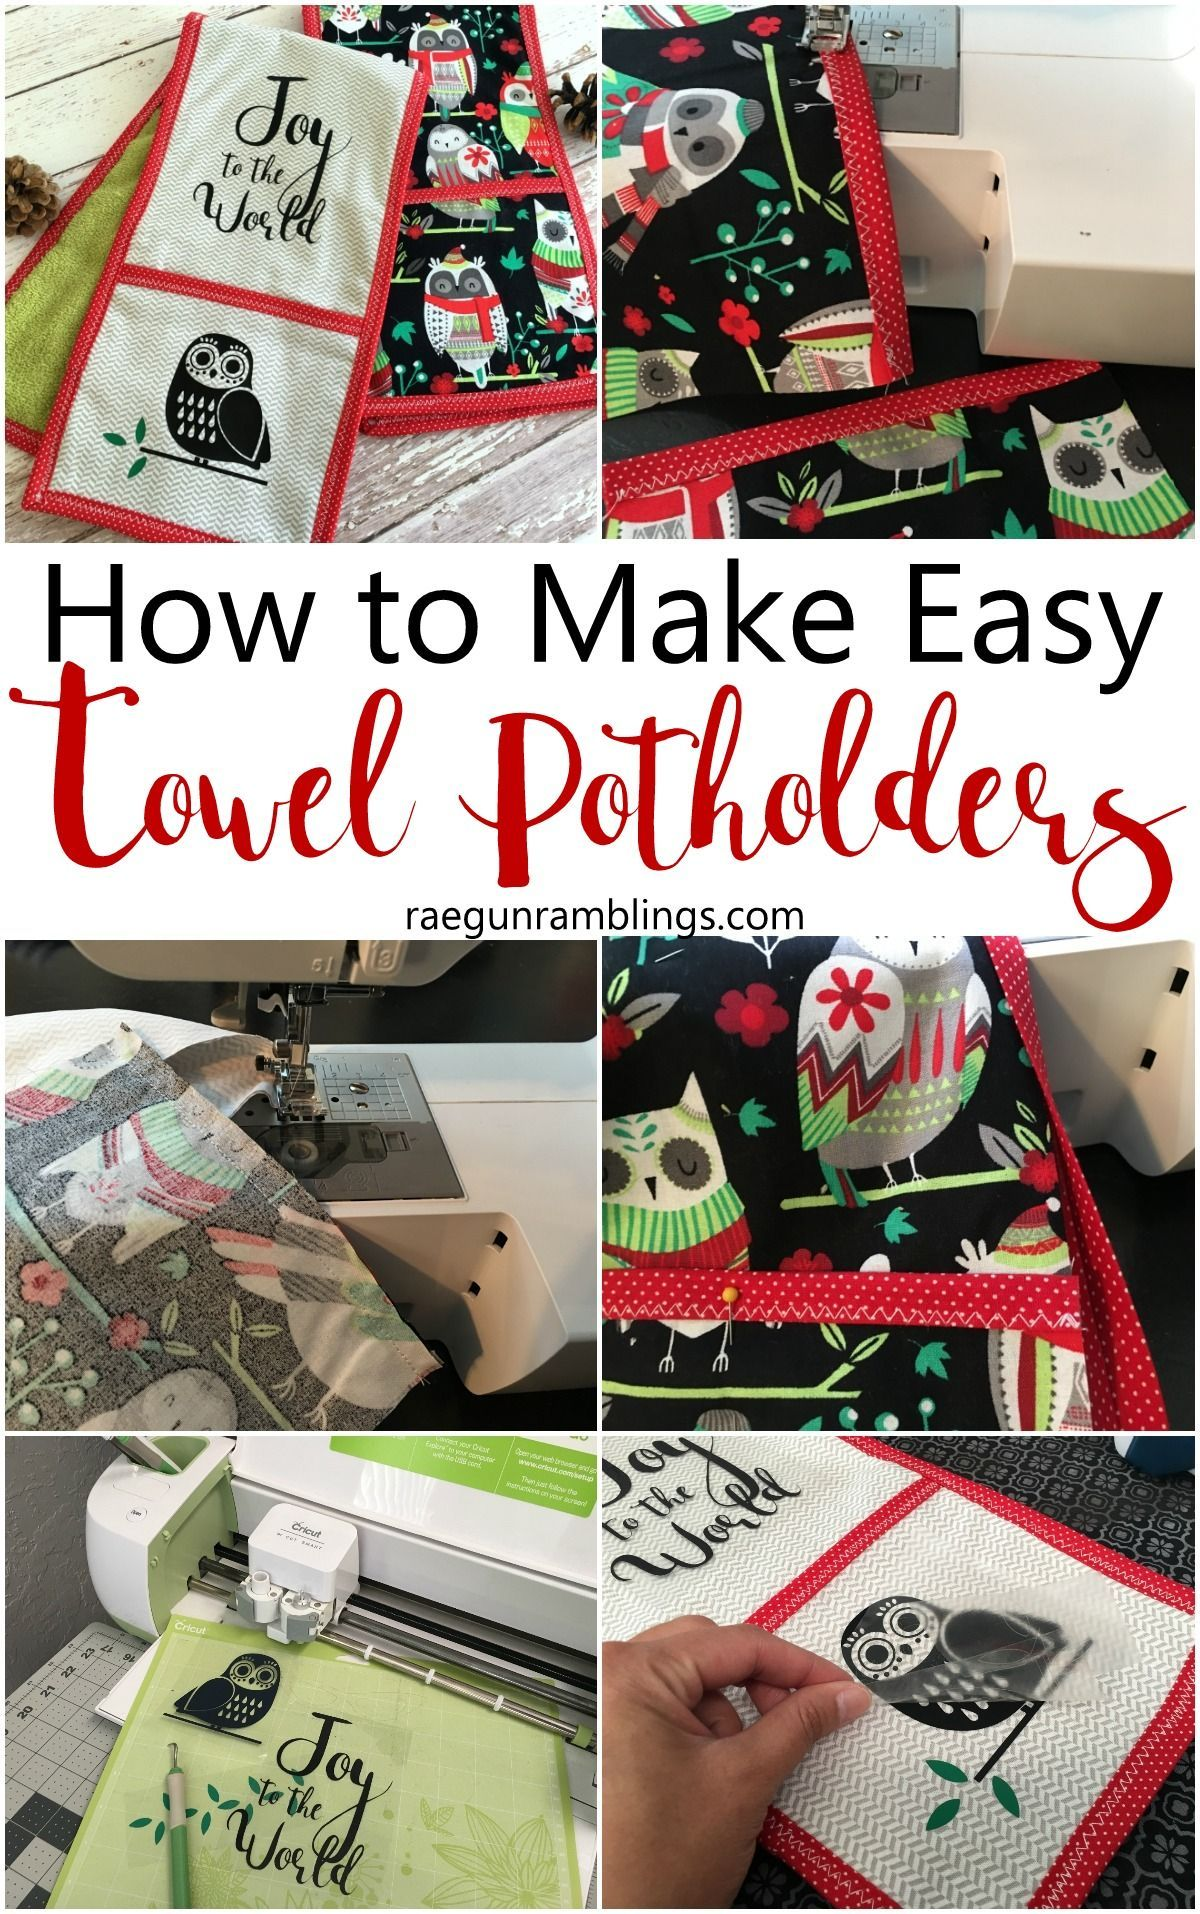 Christmas Potholder Towels | Sewing DIY and Techniques | Pinterest ...